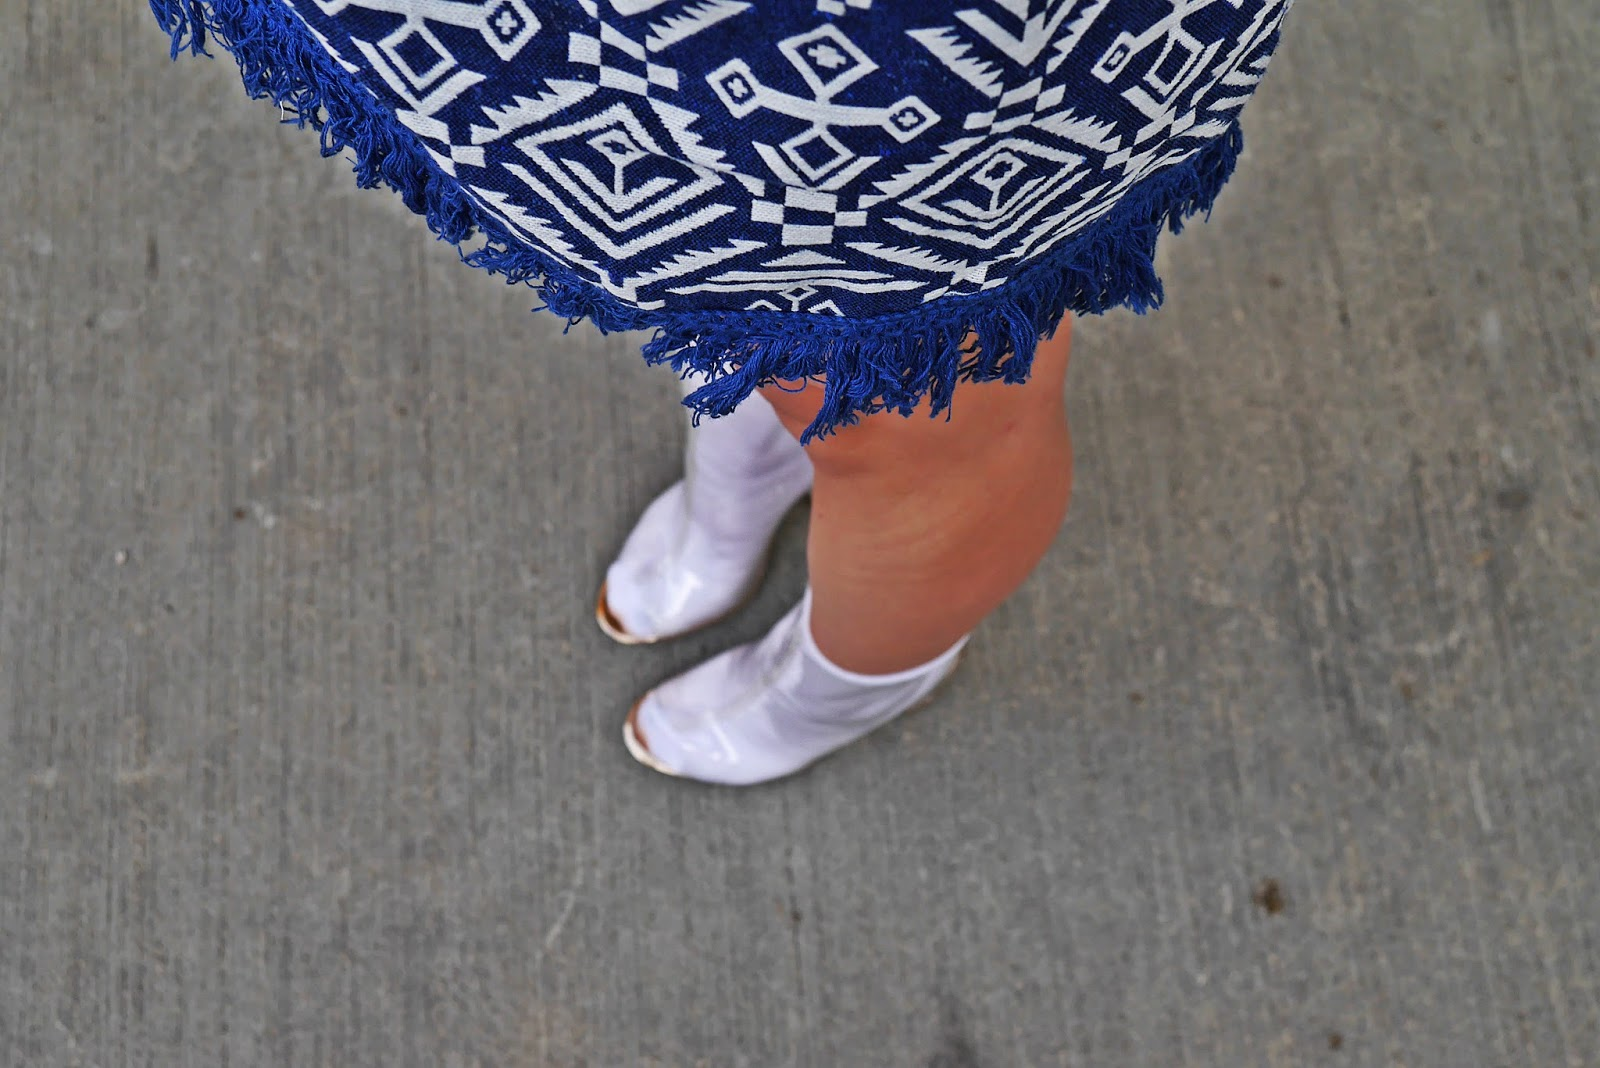 aztec_print_dress_gamiss_transparent_shoes_yezzy_kenye_west_karyn_blog_modowy_030817c